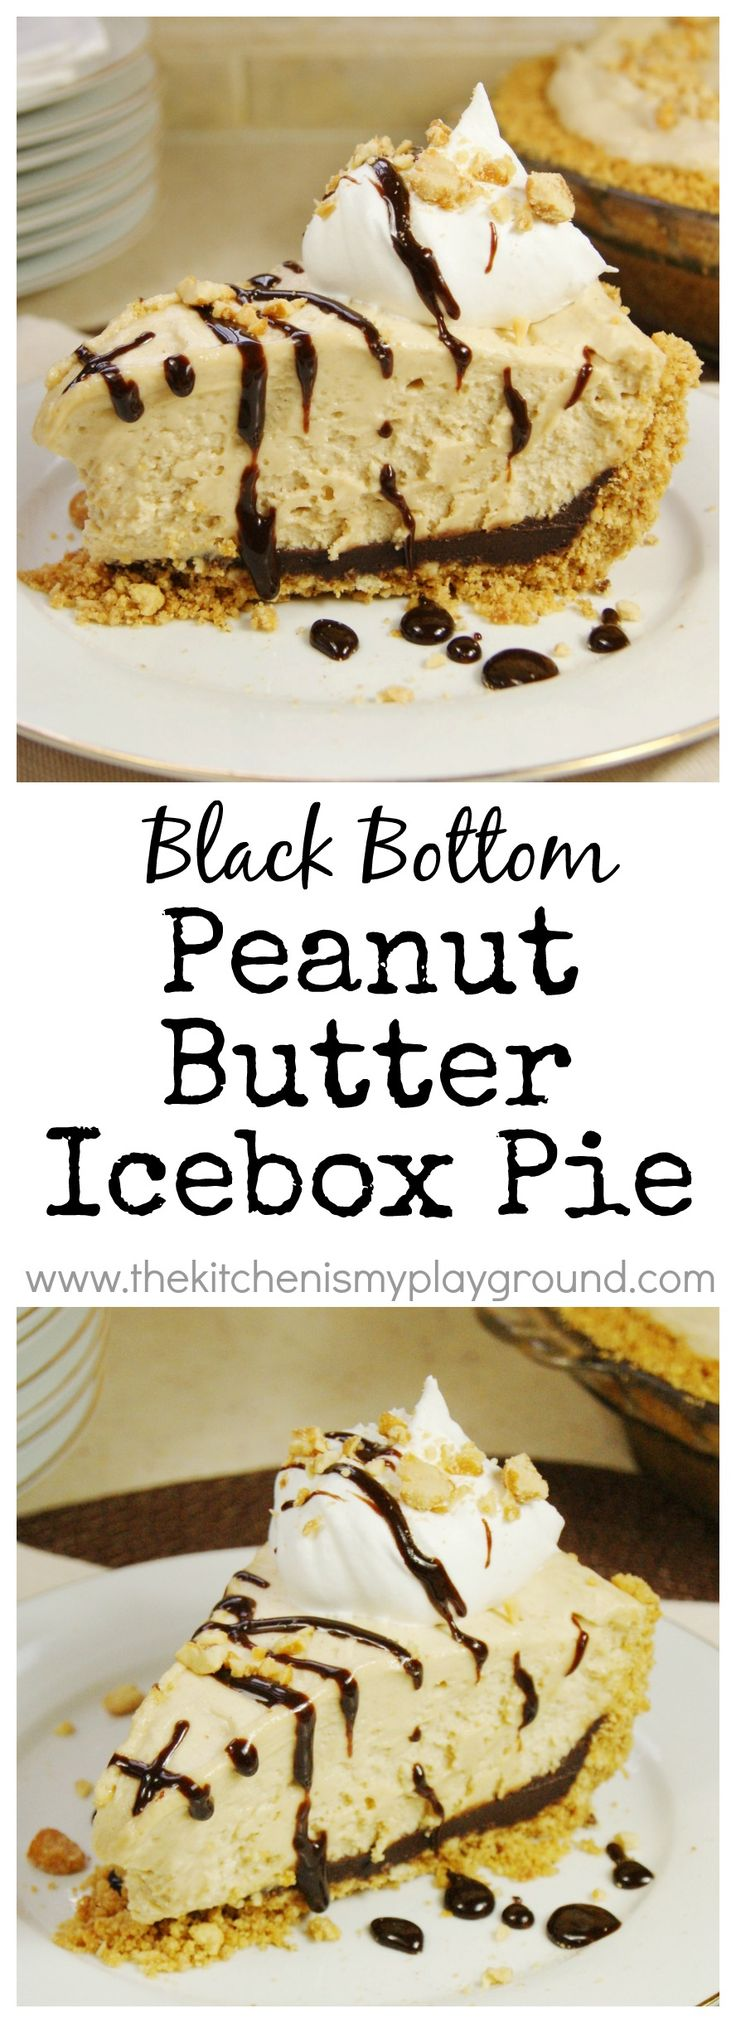 Black Bottom Peanut Butter Icebox Pie ... creamy peanut butter mousse filling on top of a chocolate ganache-lined graham cracker crust.  Yes, please! www.thekitchenismyplayground.com